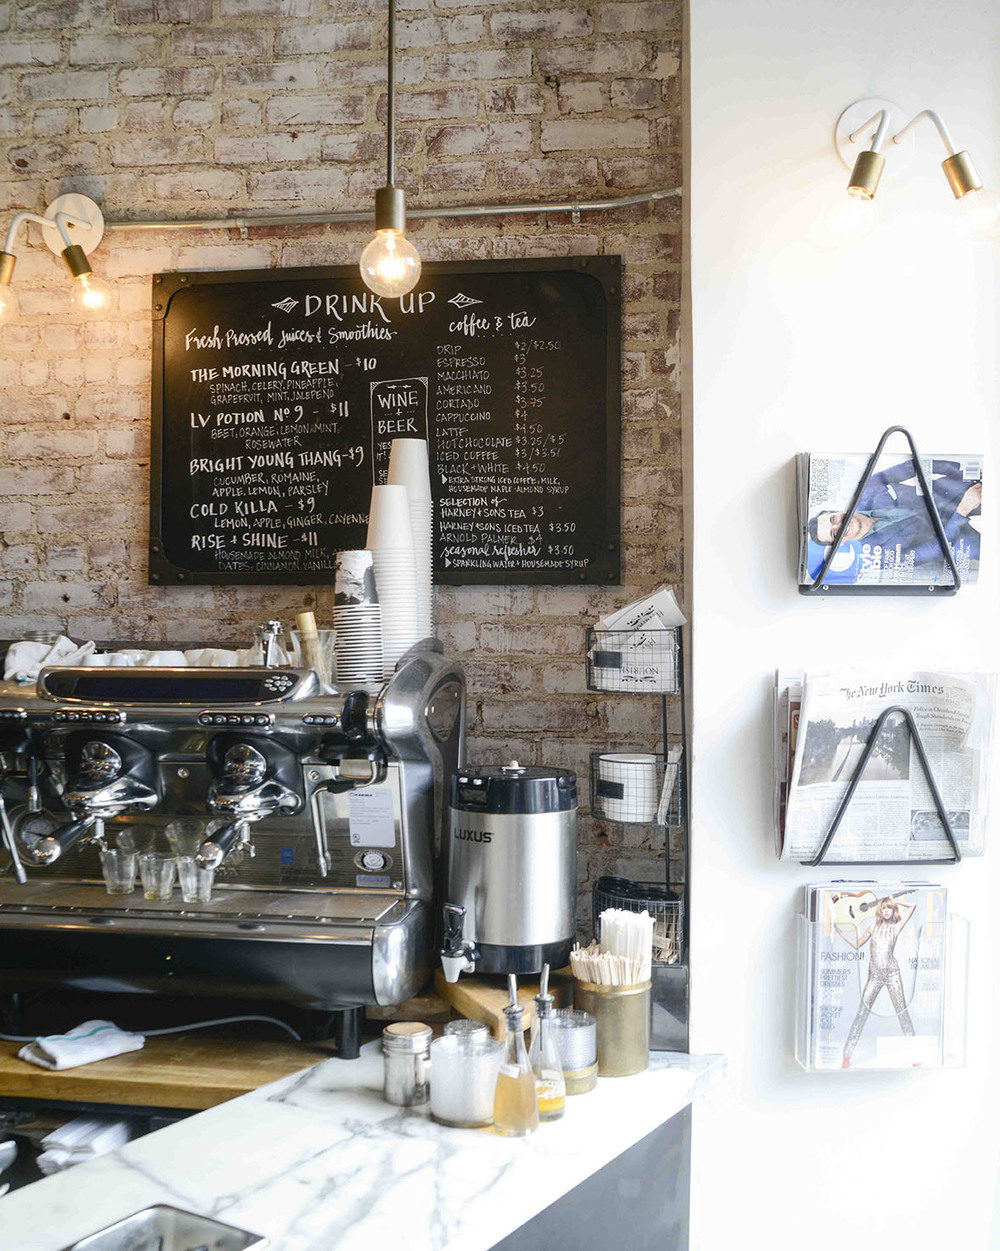 local-creative-nourish-kitchen-table-west-village-cafe-8.jpg